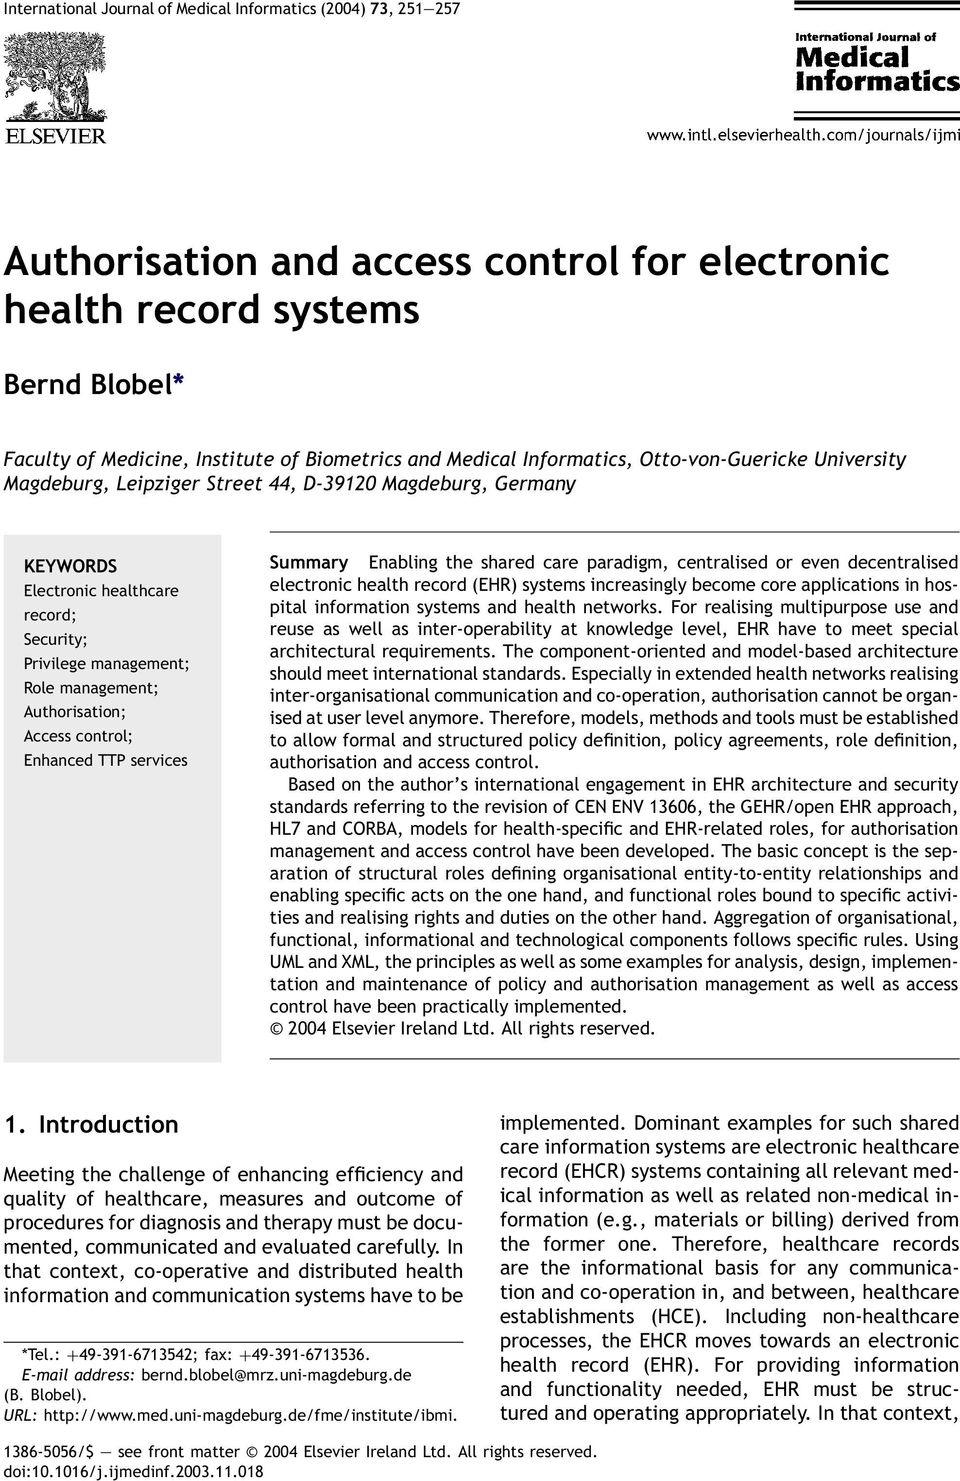 Authorisation; Access control; Enhanced TTP services Summary Enabling the shared care paradigm, centralised or even decentralised electronic health record (EHR) systems increasingly become core